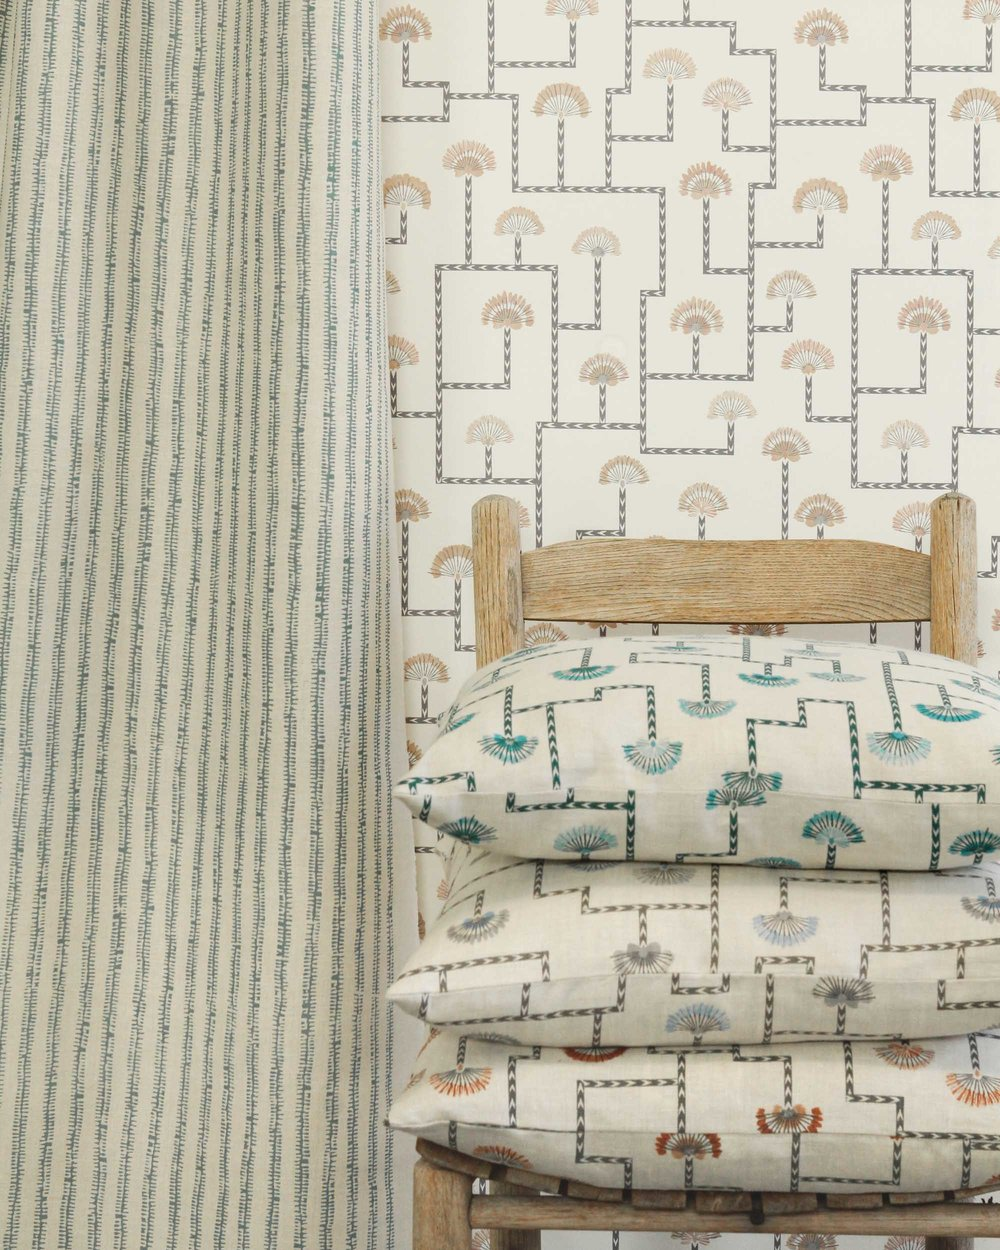 Path & Indos wallpaper and fabric